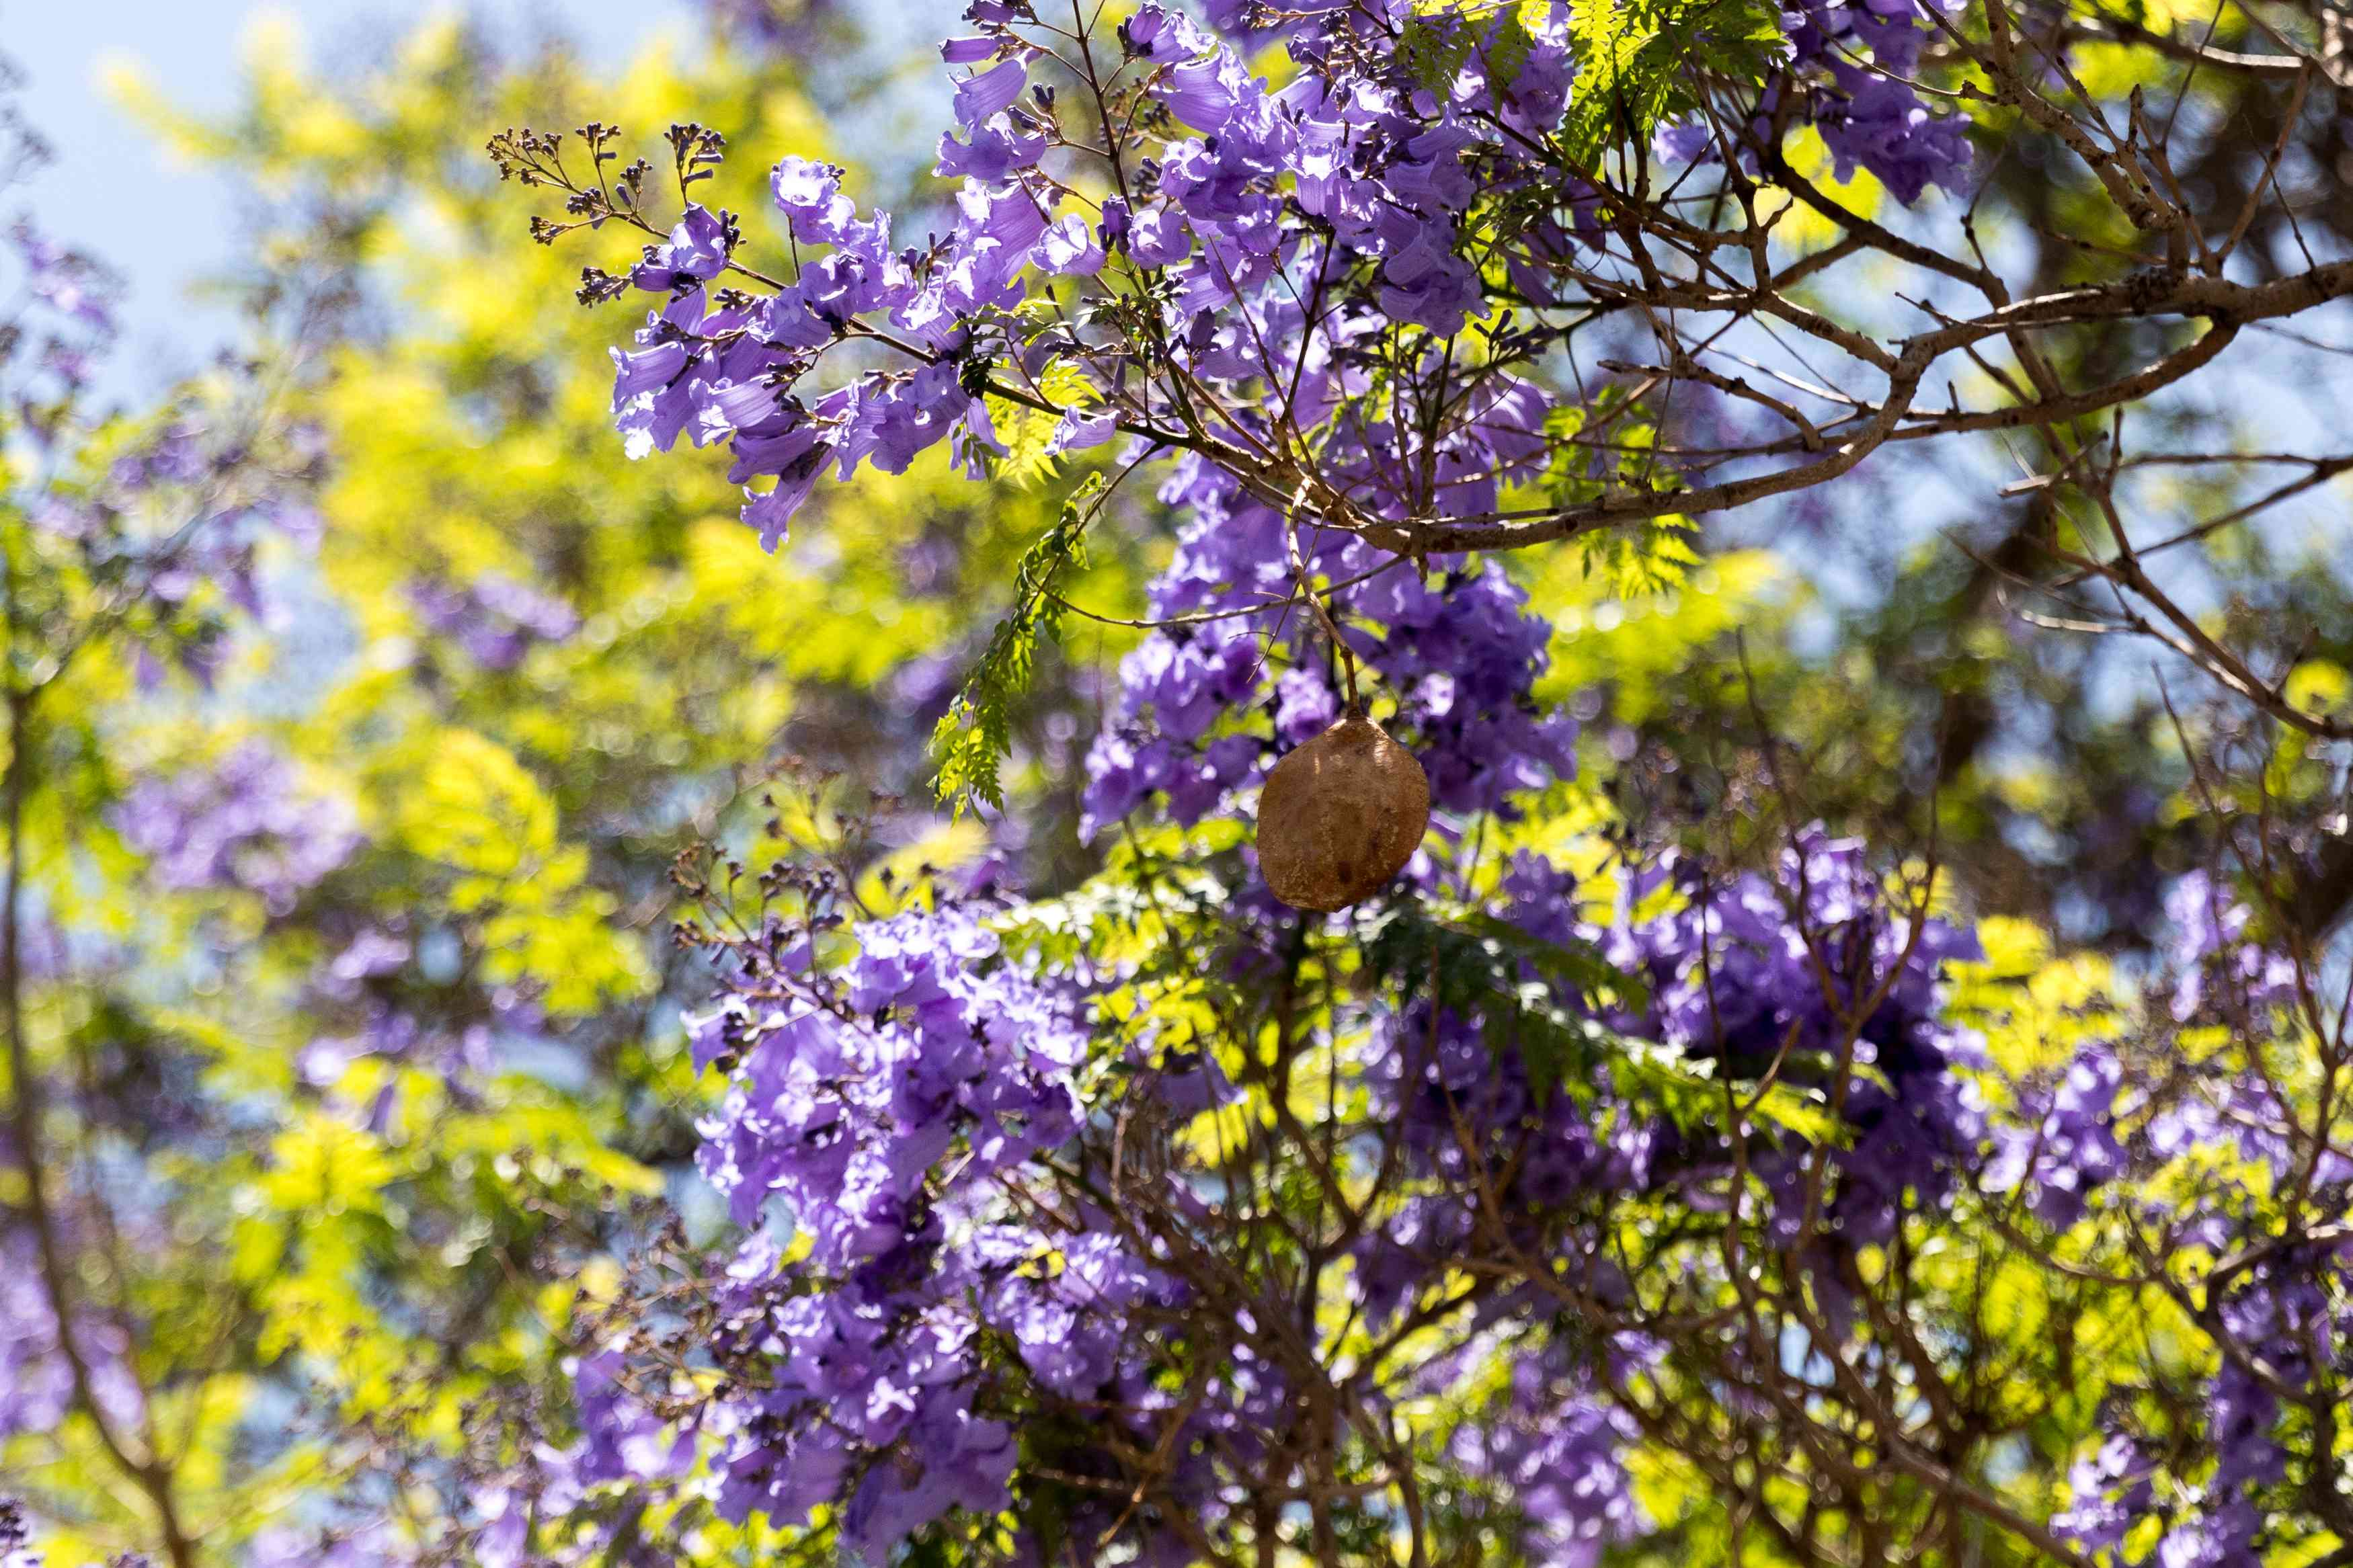 Jacaranda tree branches with purple trumpet-like flowers in front of yellow-green leaves